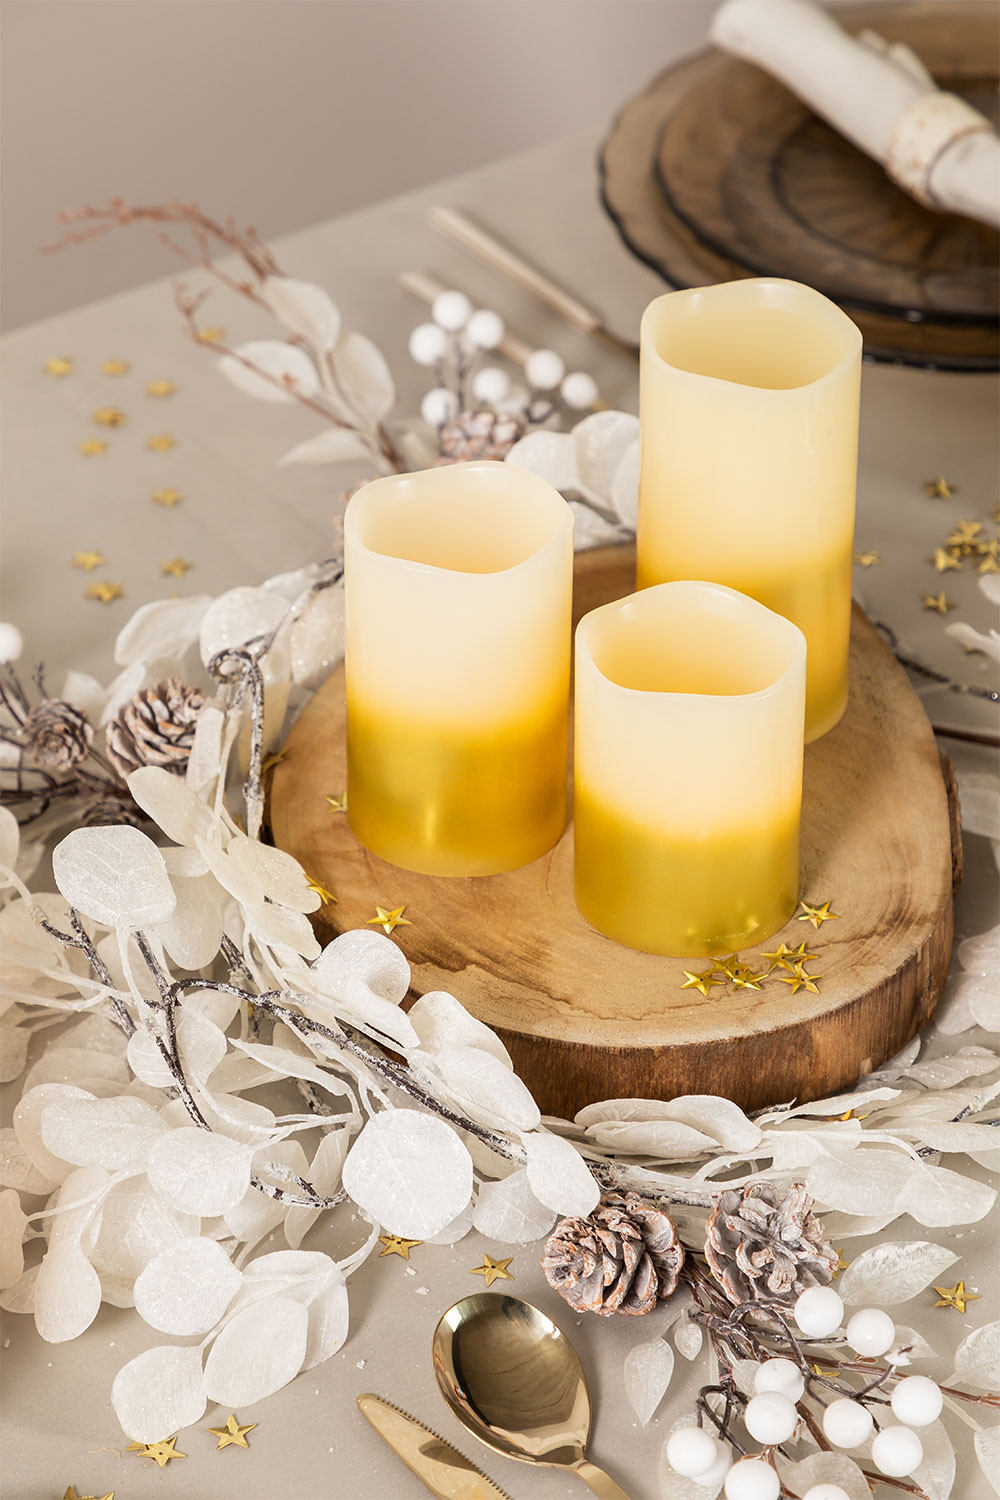 Enzah LED Candles, gallery image 1